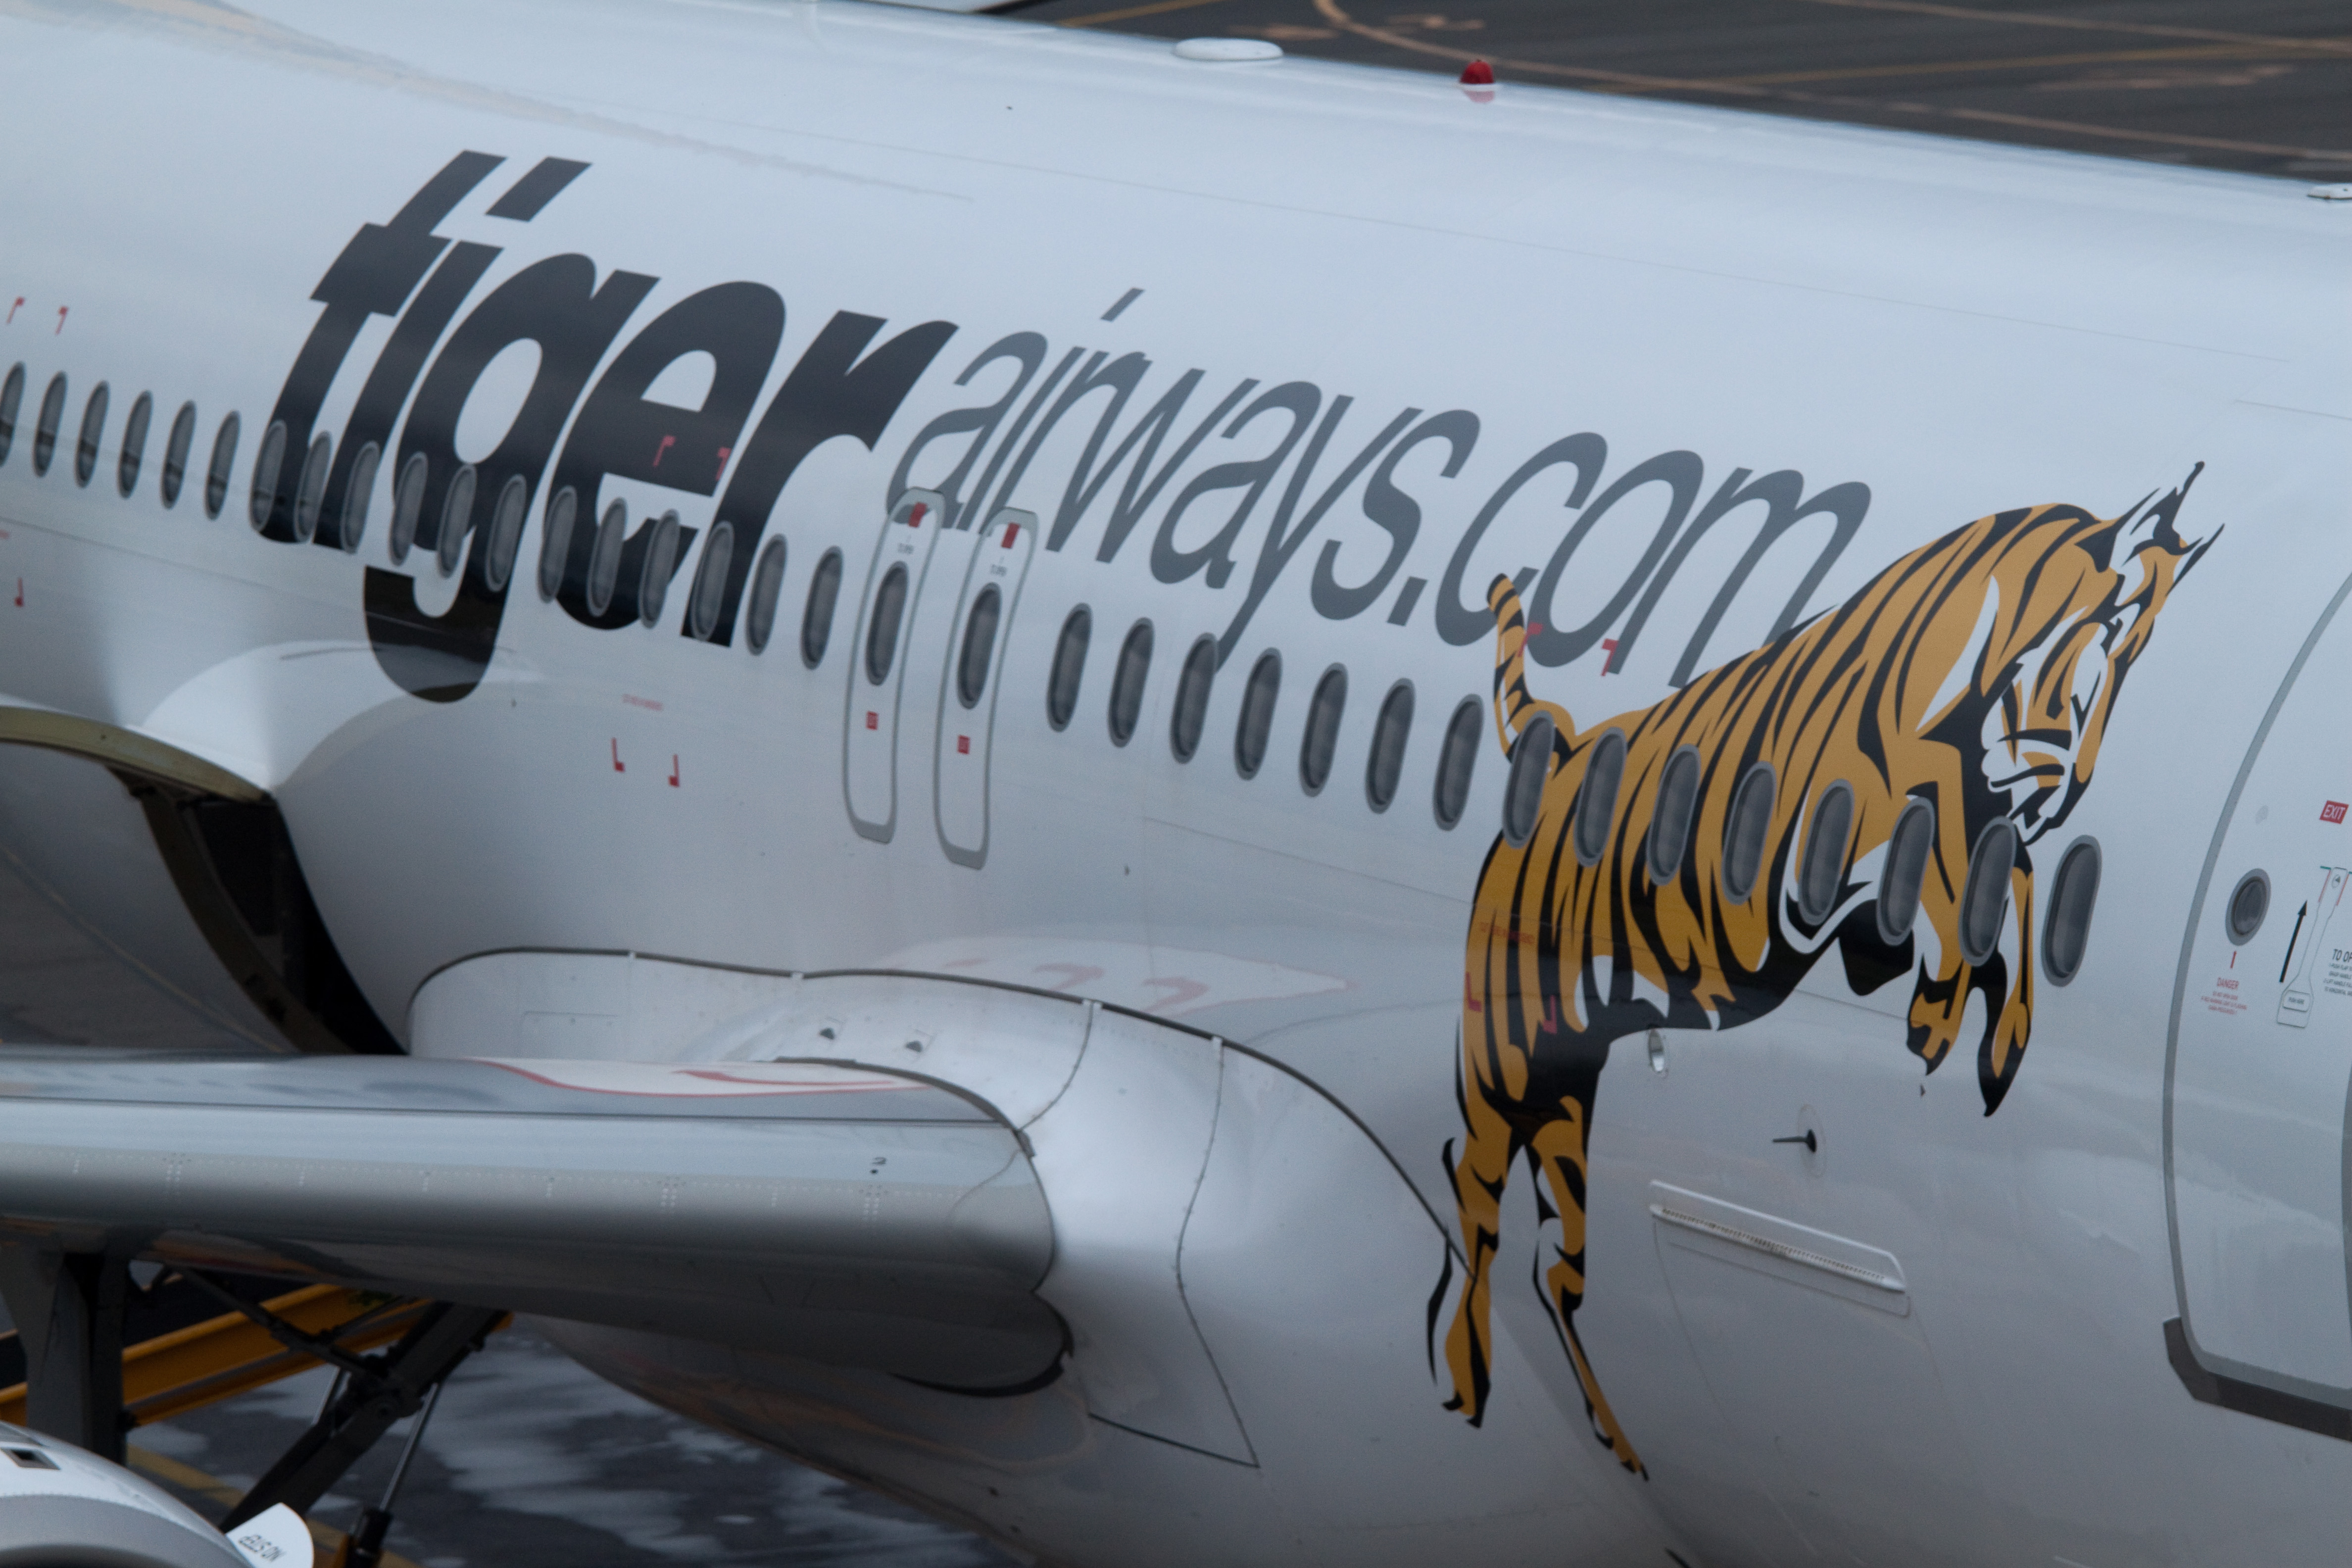 Description Tiger Airways Australia Logo.jpg